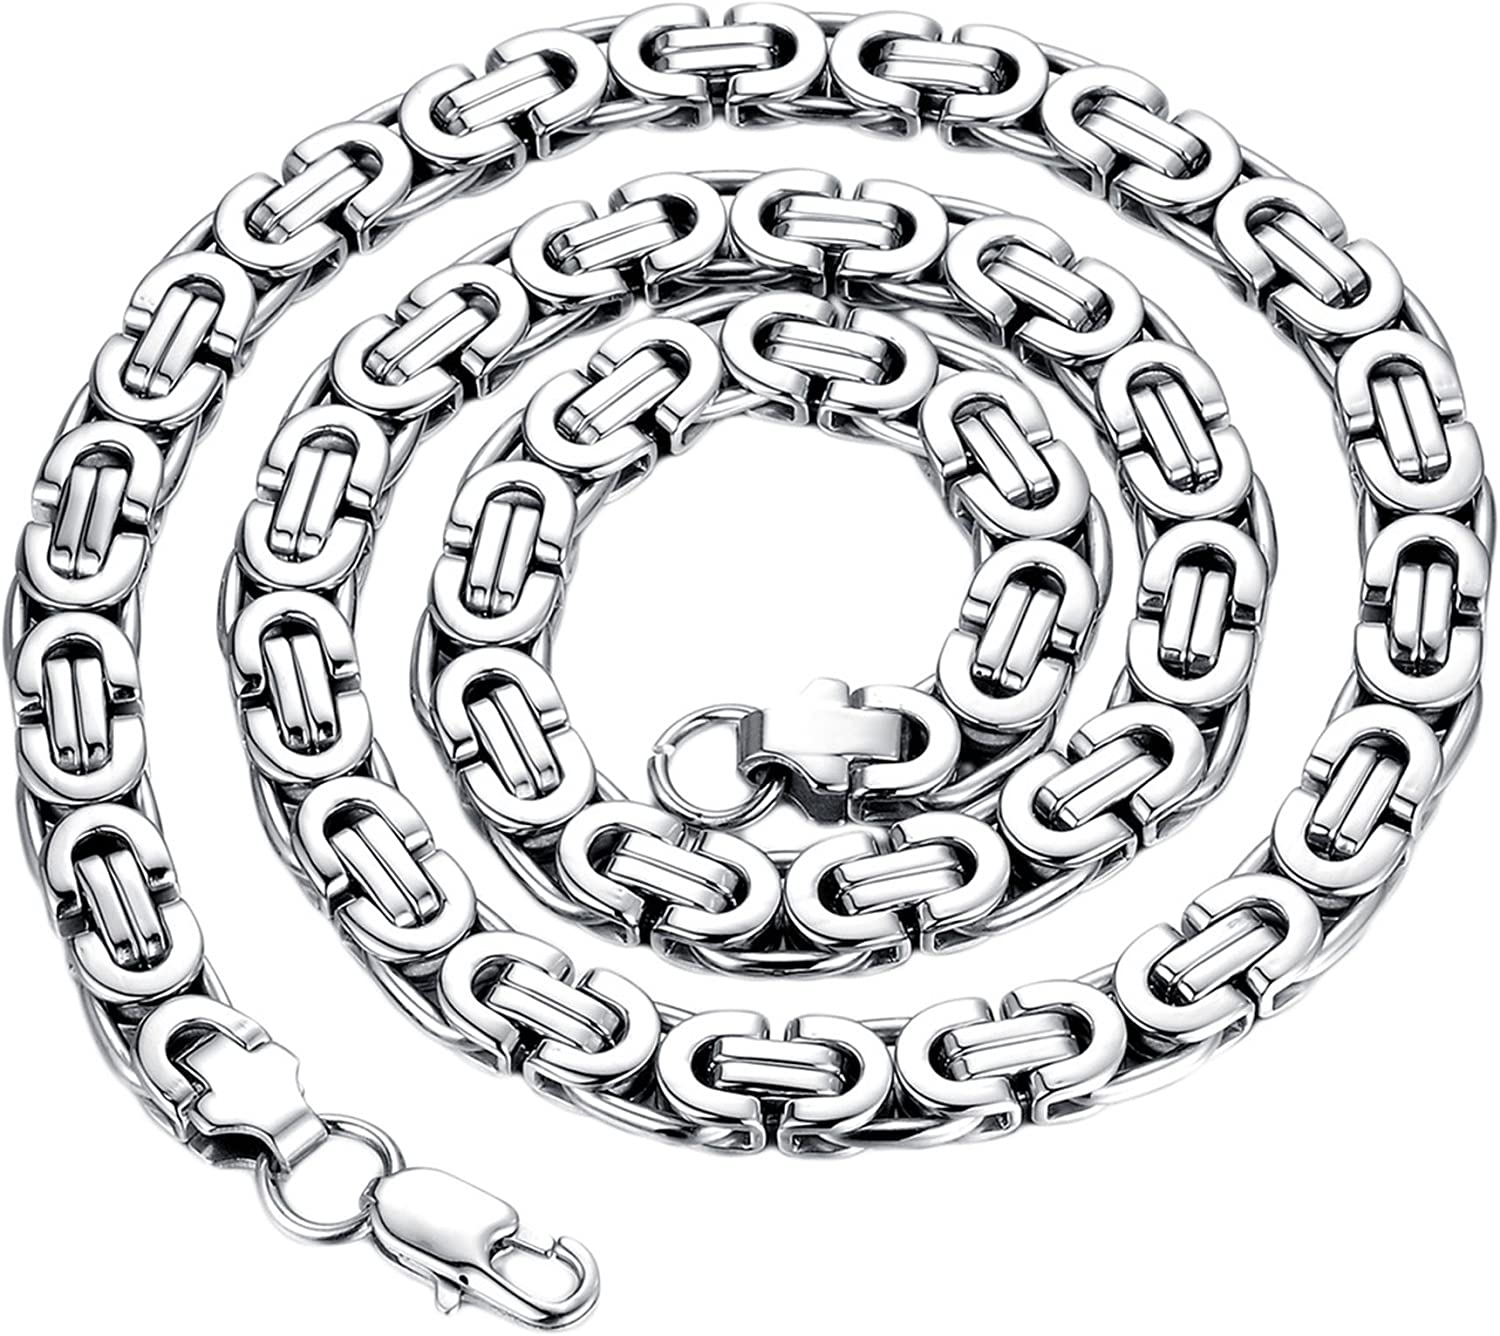 Aokarry Chain Necklace Stainless Steel Chain Necklace for Men Women Silver//Silver Gold 22 Inches